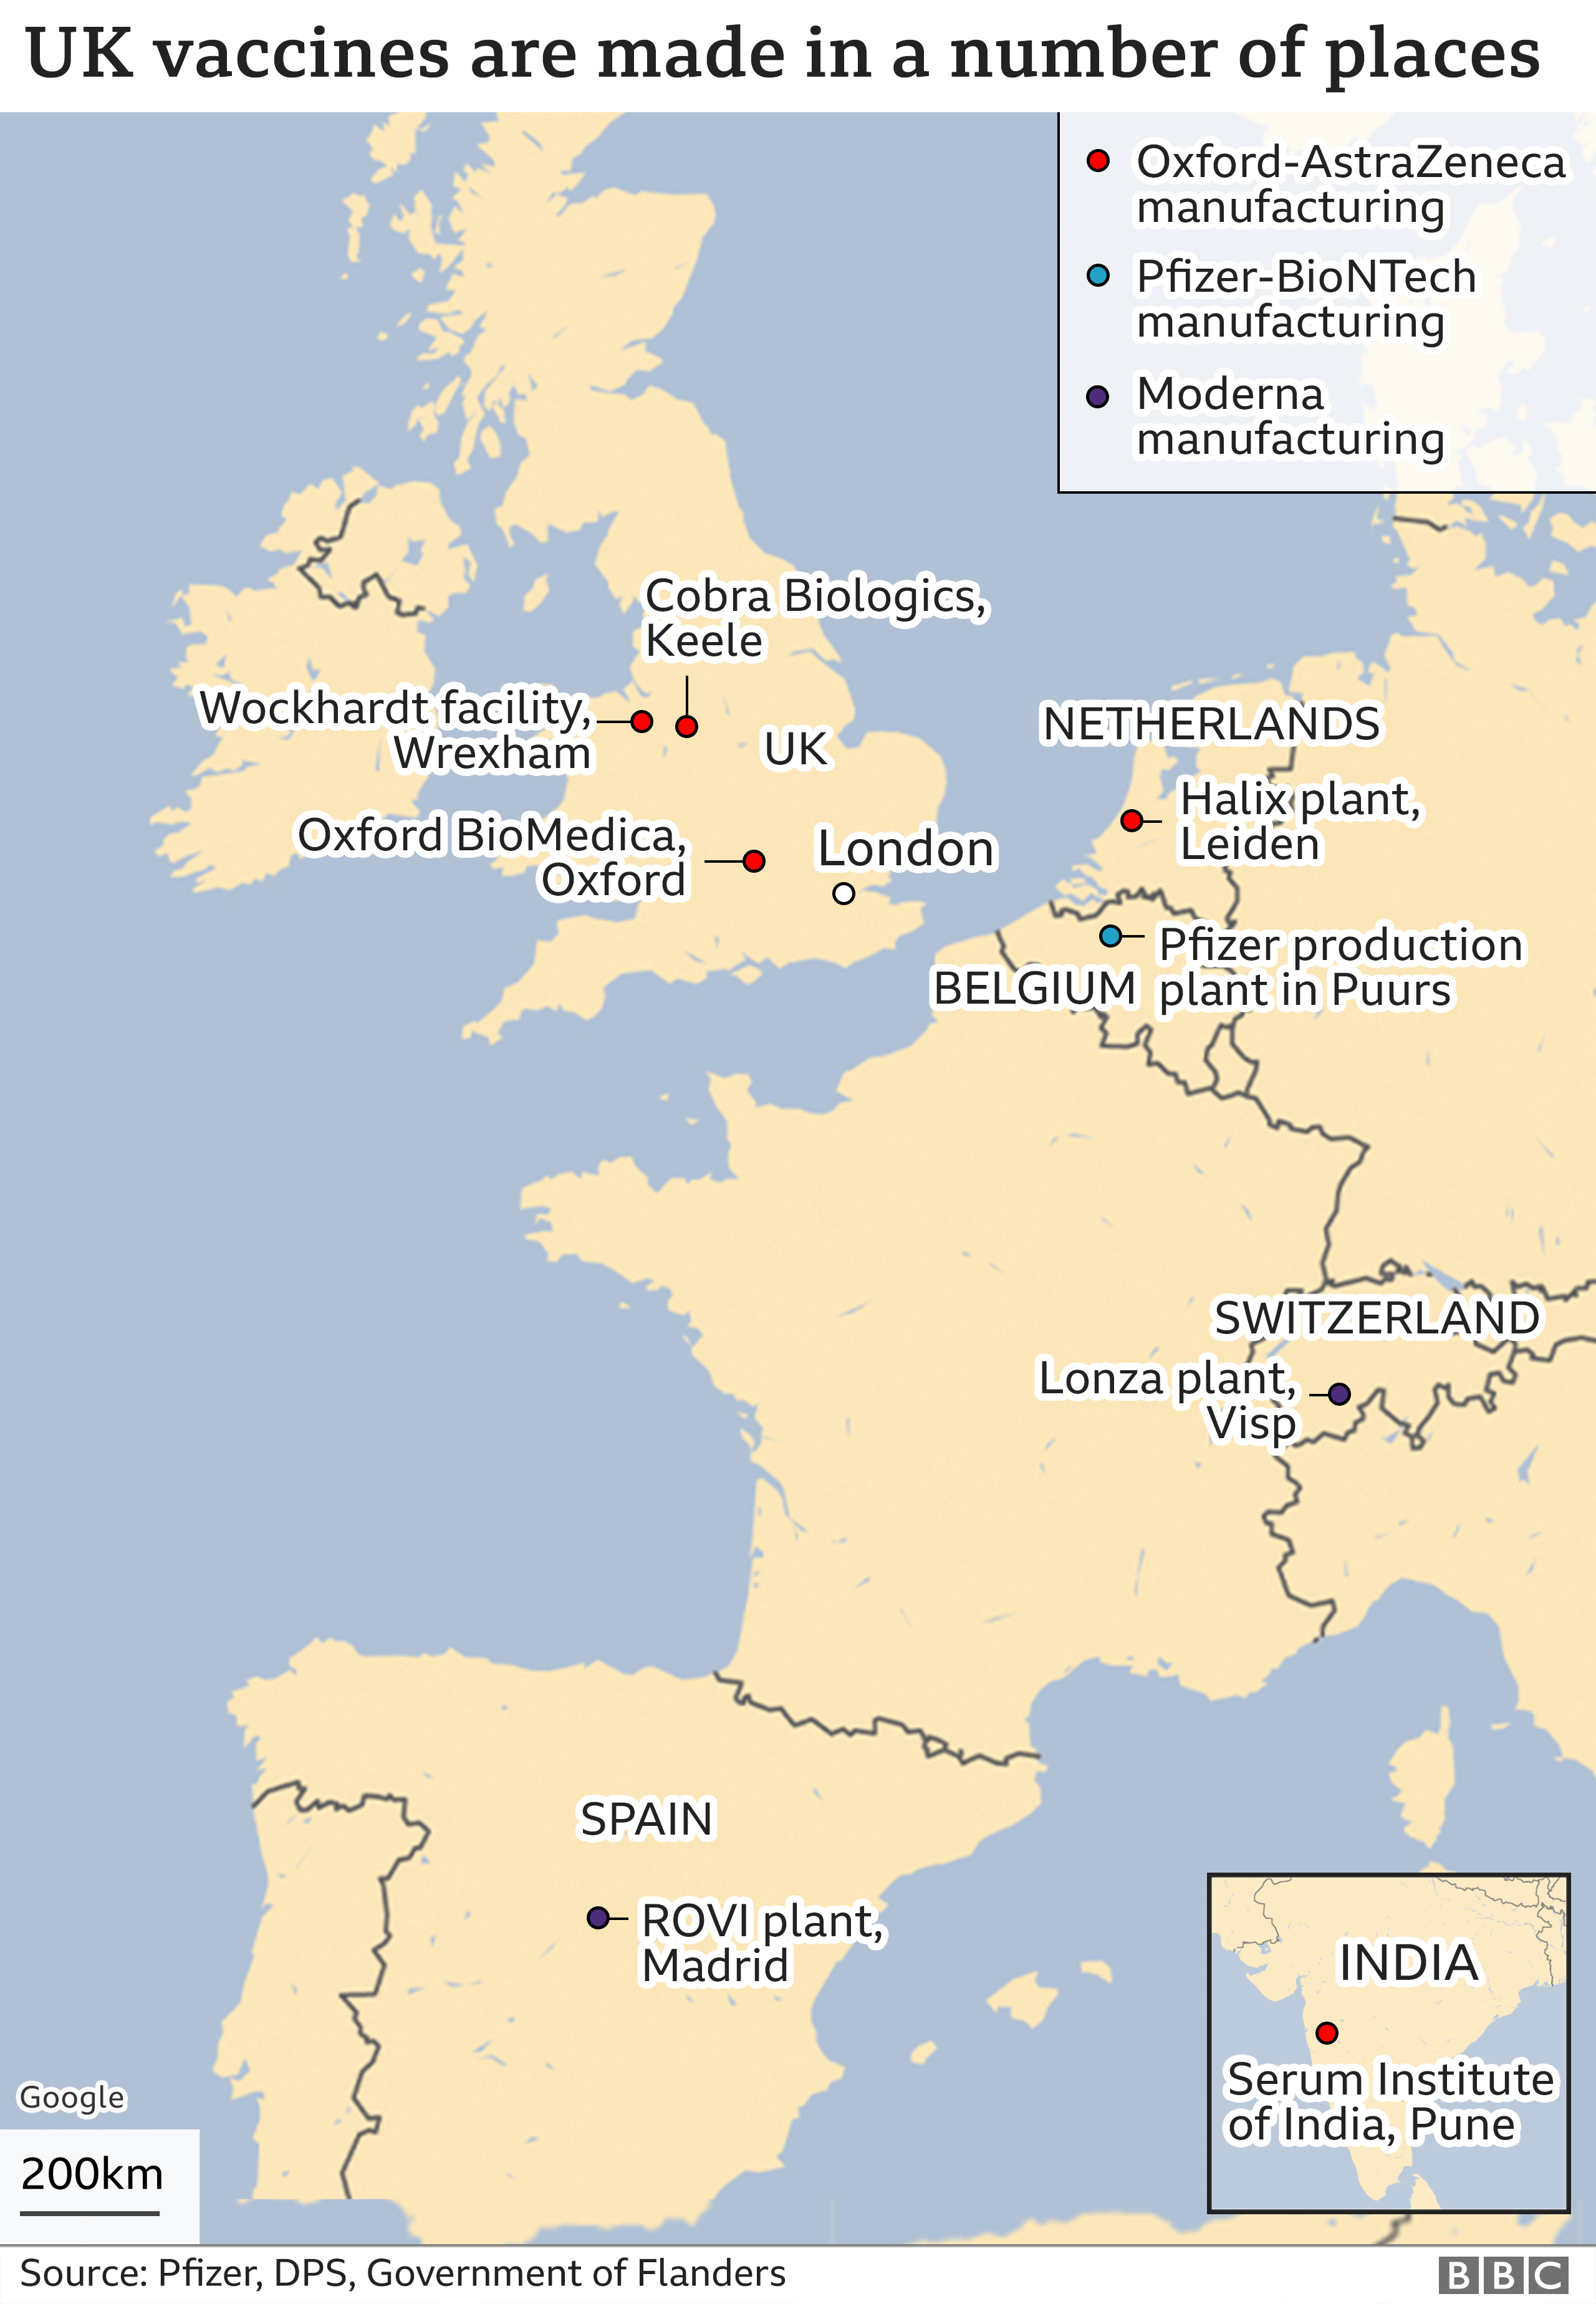 Map showing where the vaccines are made across the UK, Europe and India